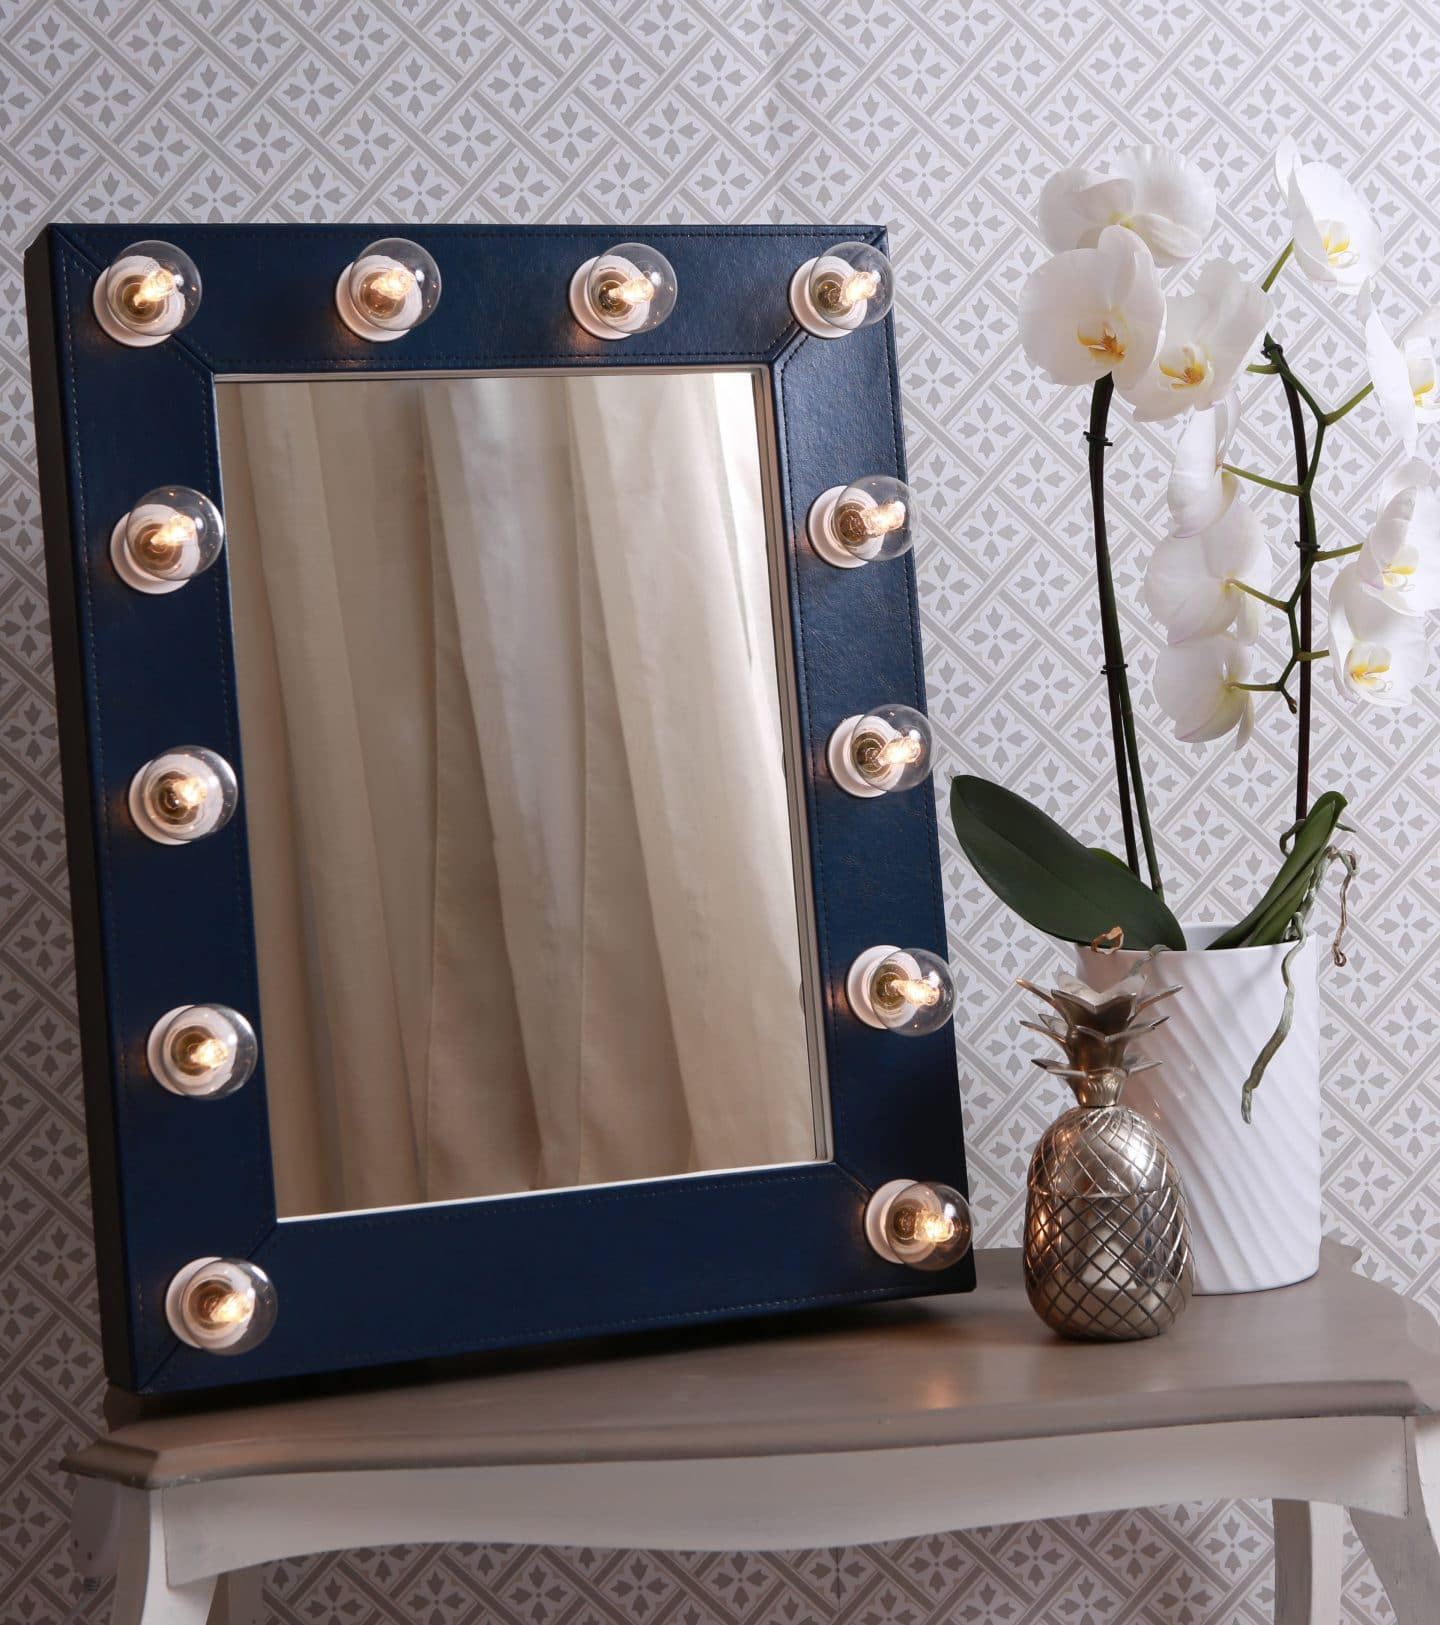 New Limited Edition Navy Blue & White Vanity at Launch Price!